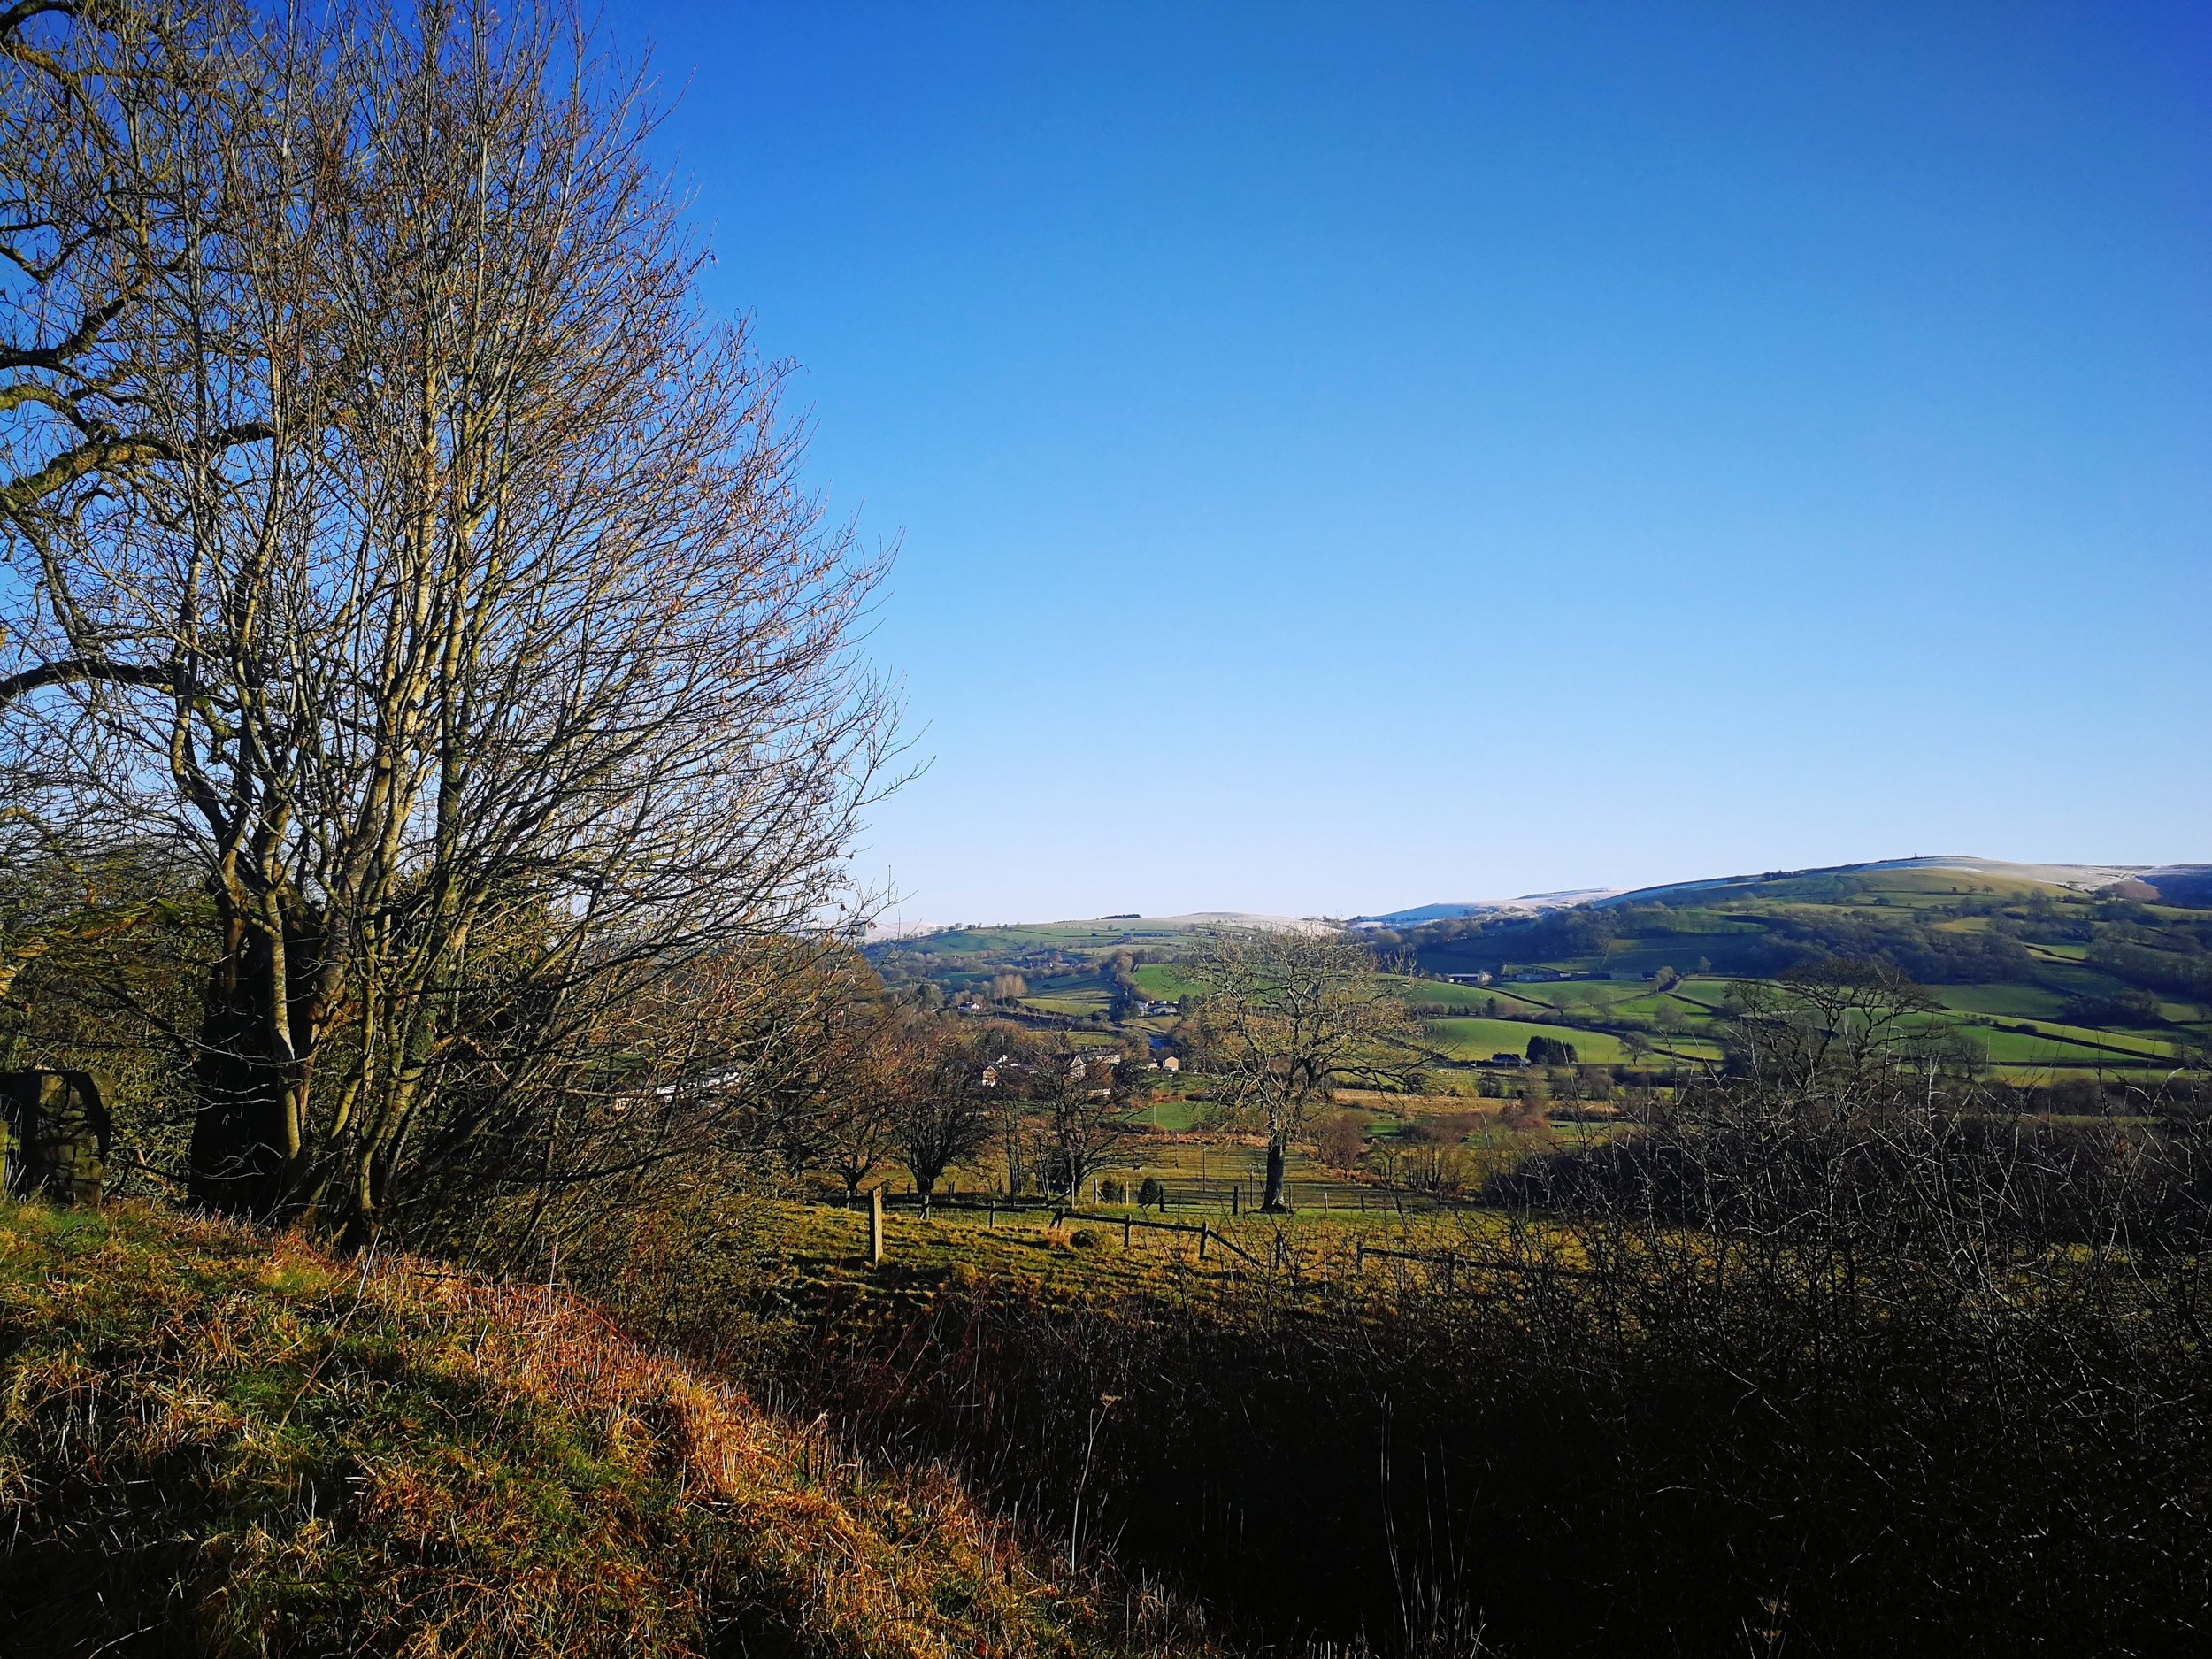 Views across Radnorshire